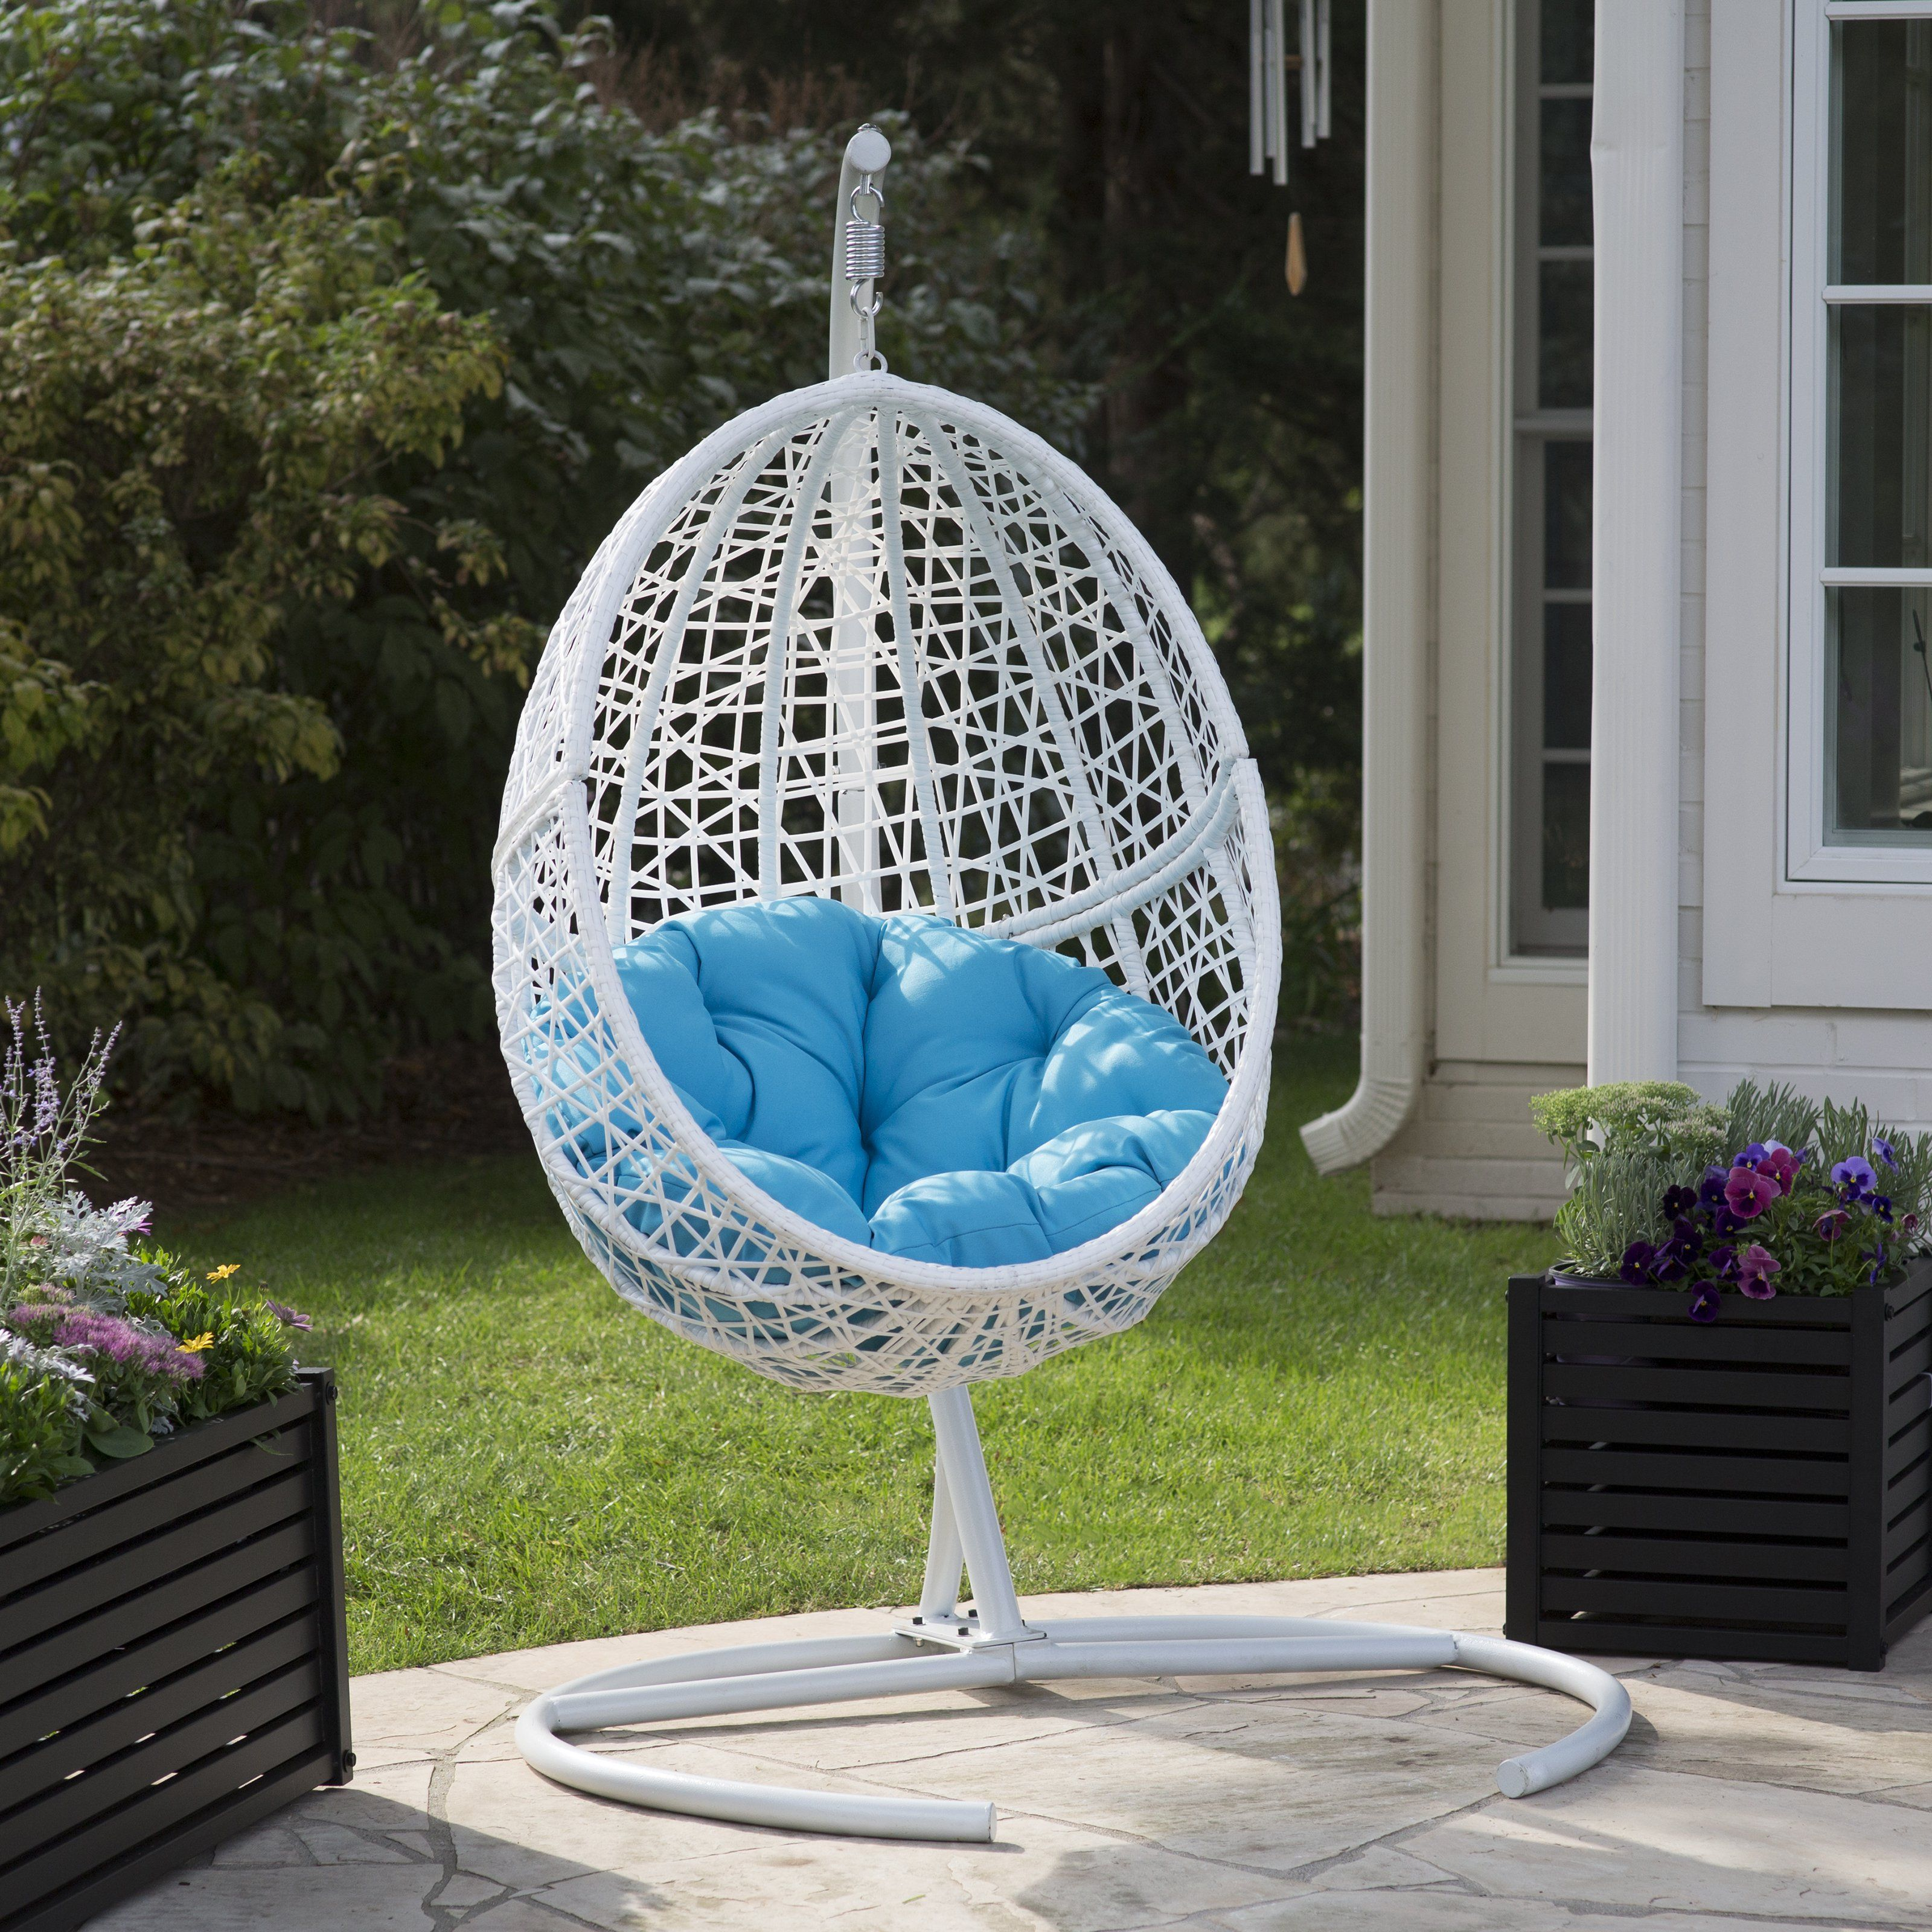 Merveilleux Outdoor Island Bay Resin Wicker Blanca Hanging Egg Chair With Cushion Color  Option And Stand   WS 7323